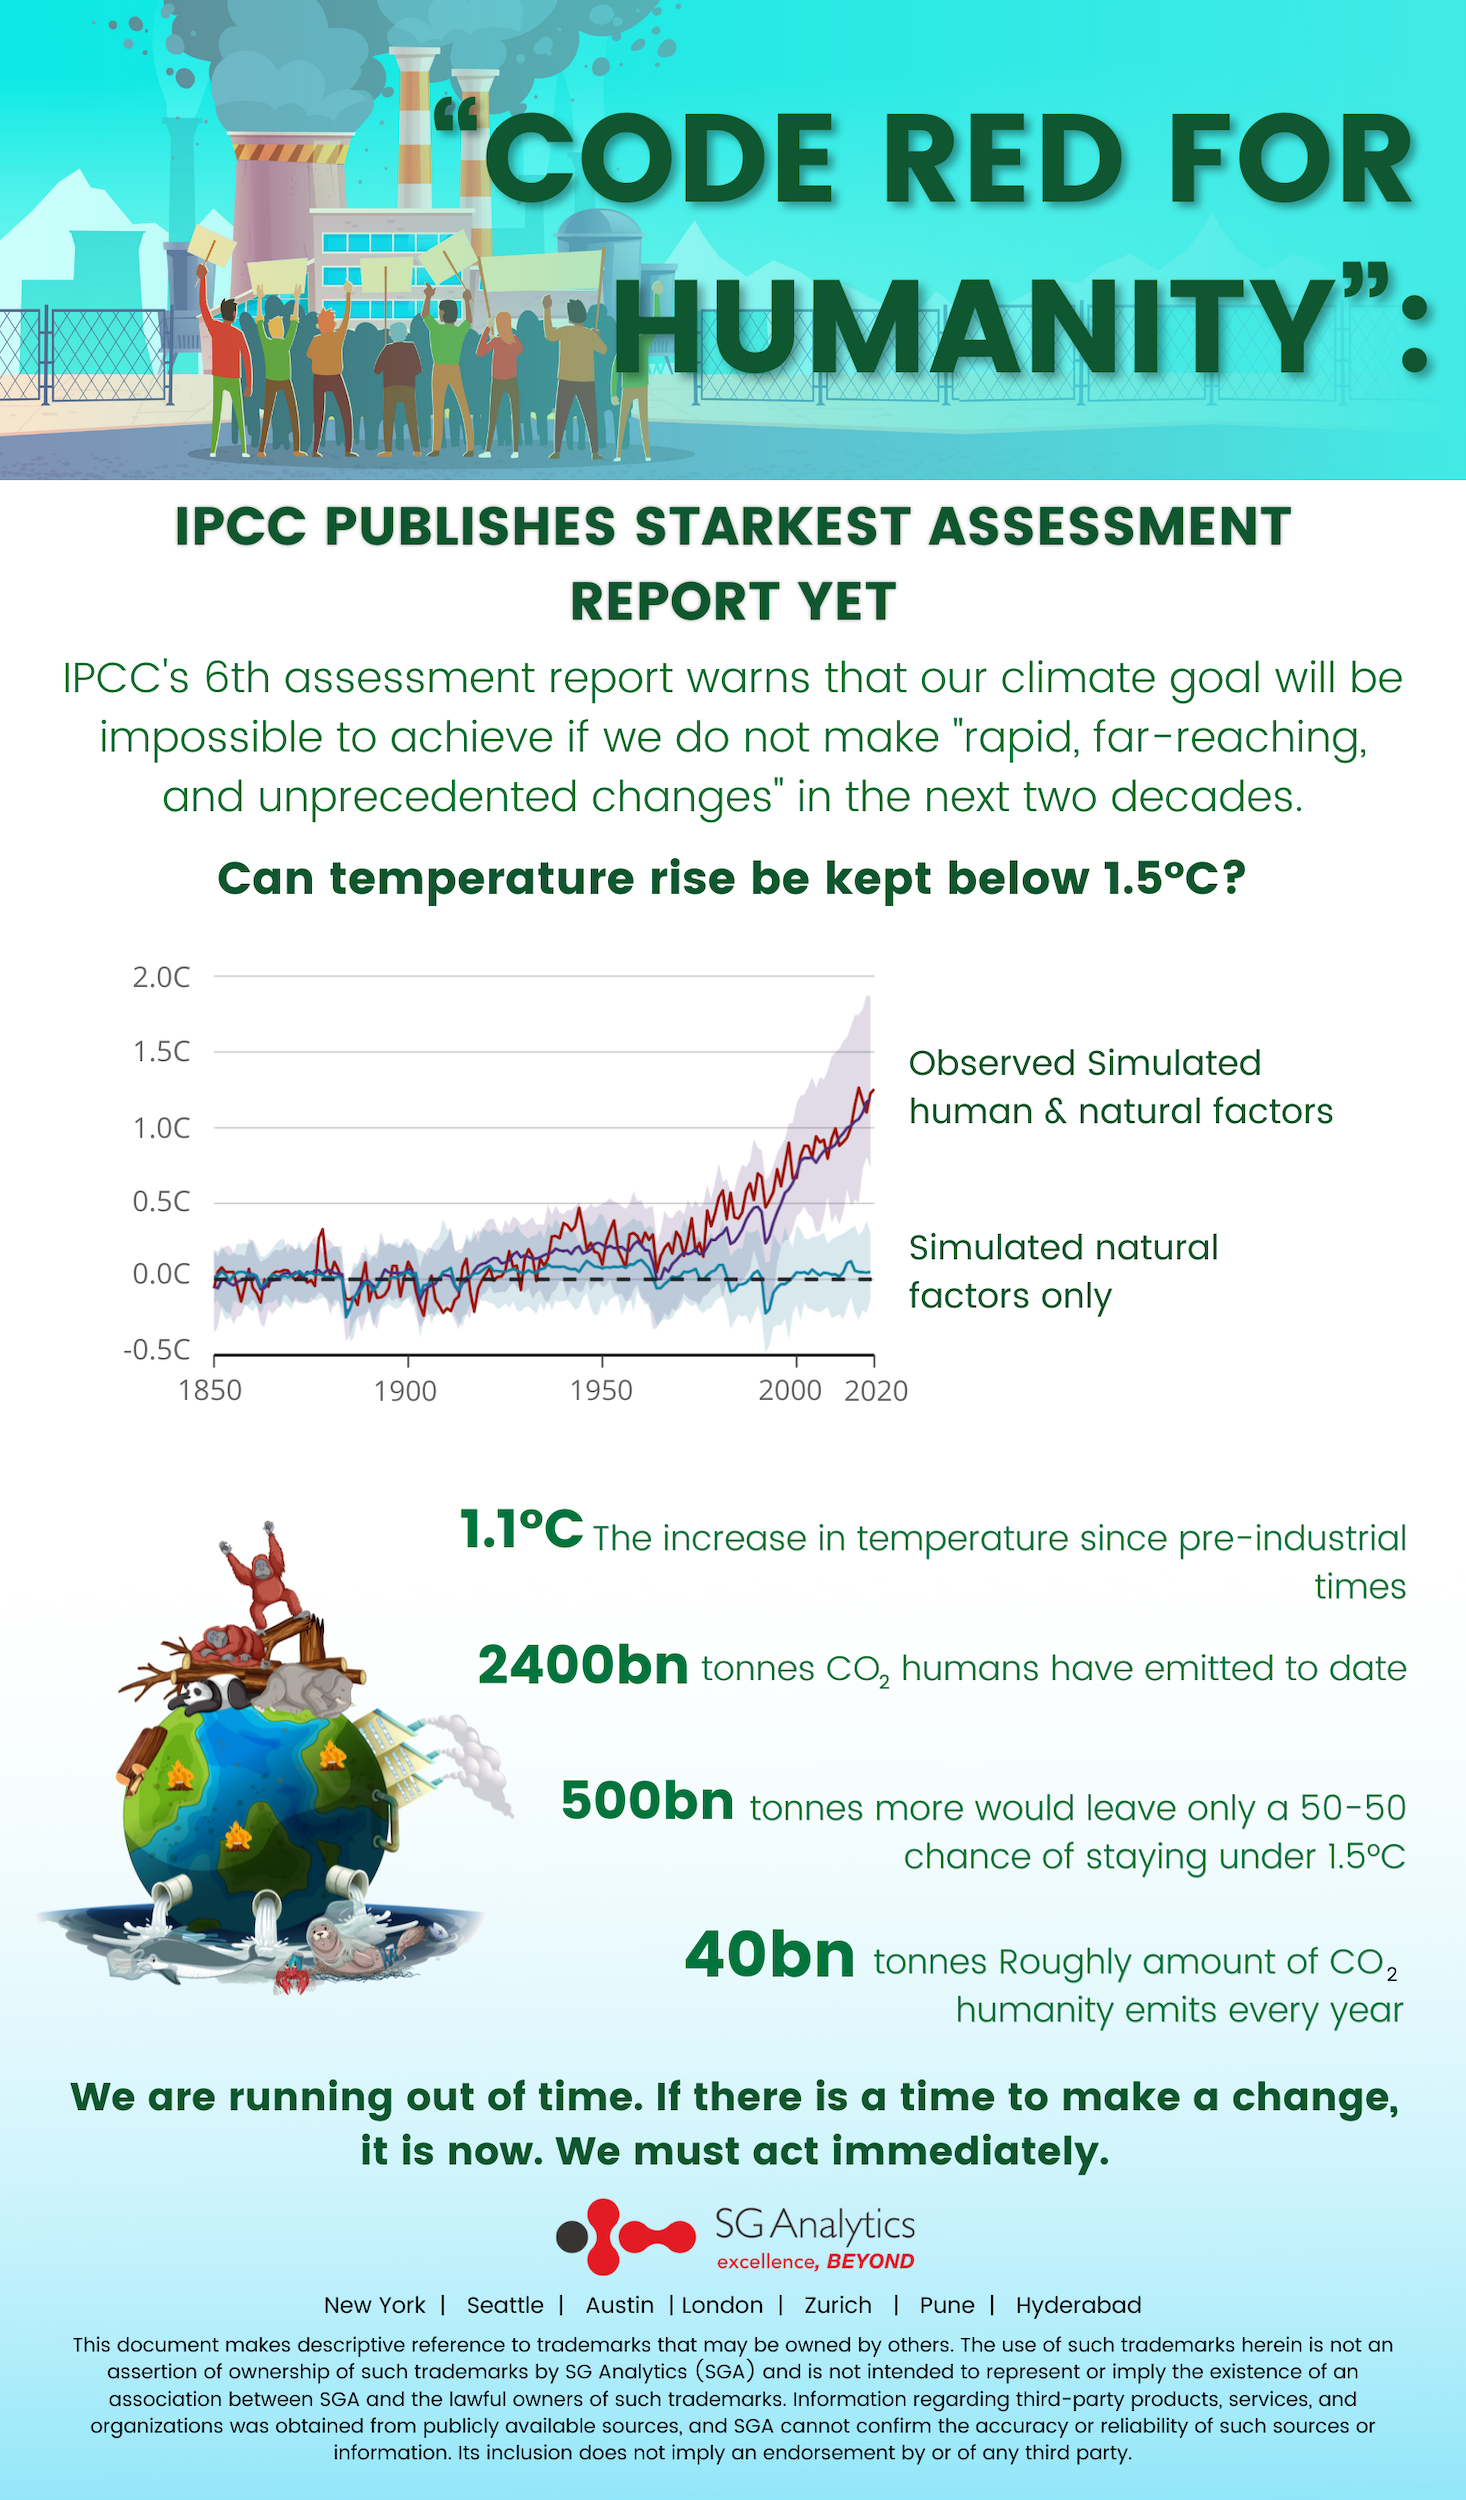 Code Red for Humanity IPCC Publishes Starkest Assessment Report Yet